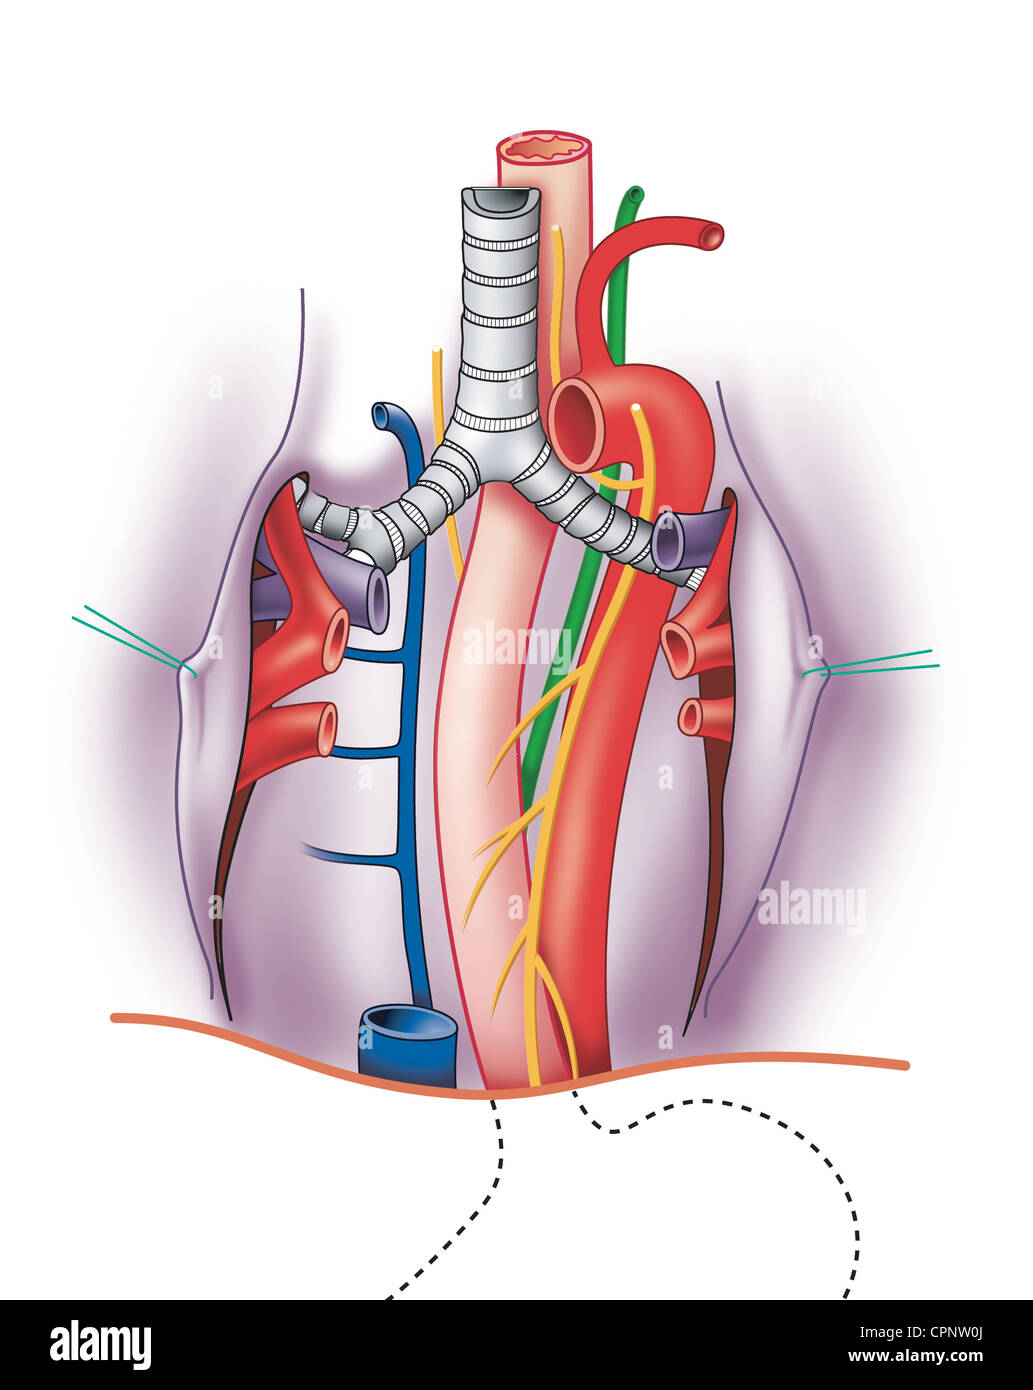 Bronchial Artery Stock Photos & Bronchial Artery Stock Images - Alamy